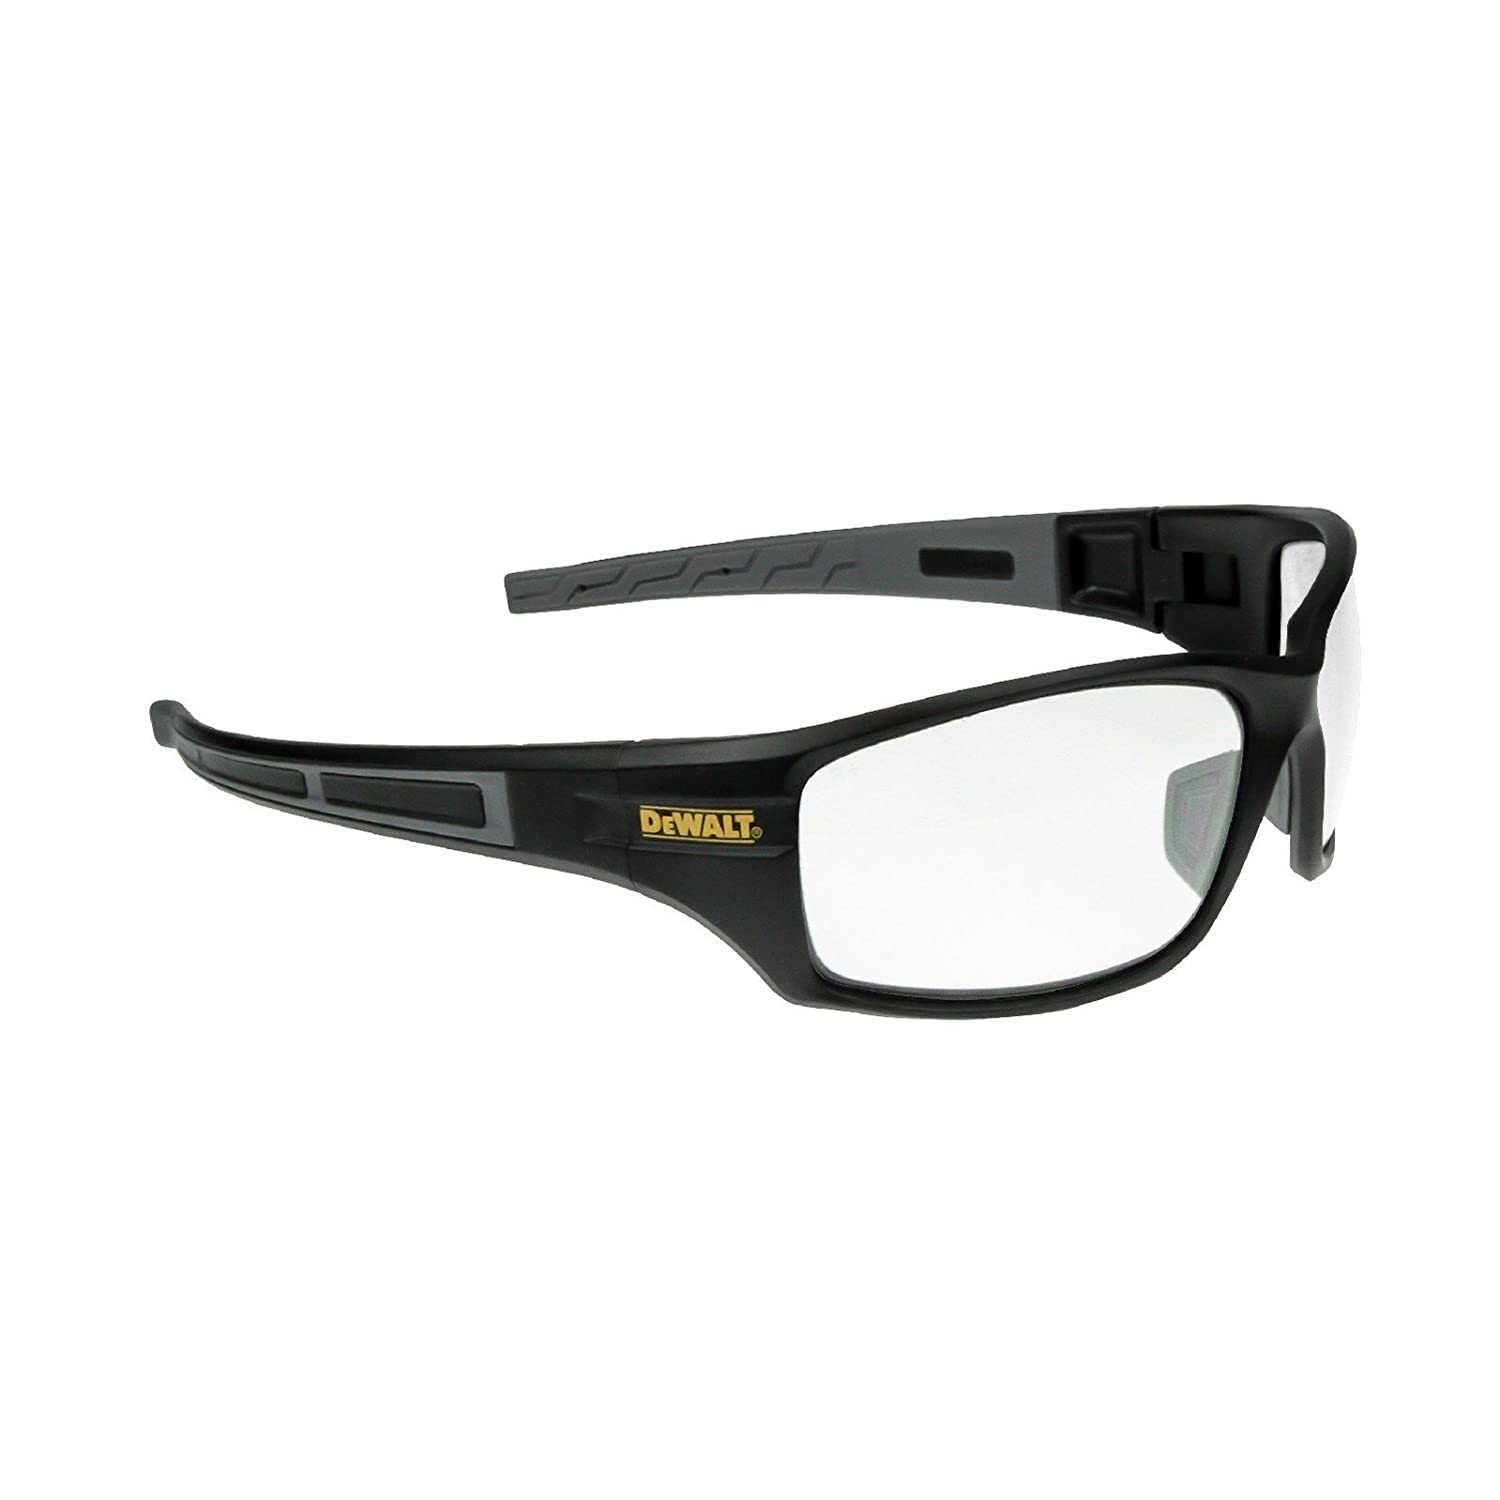 Dewalt Auger Safety Eyewear